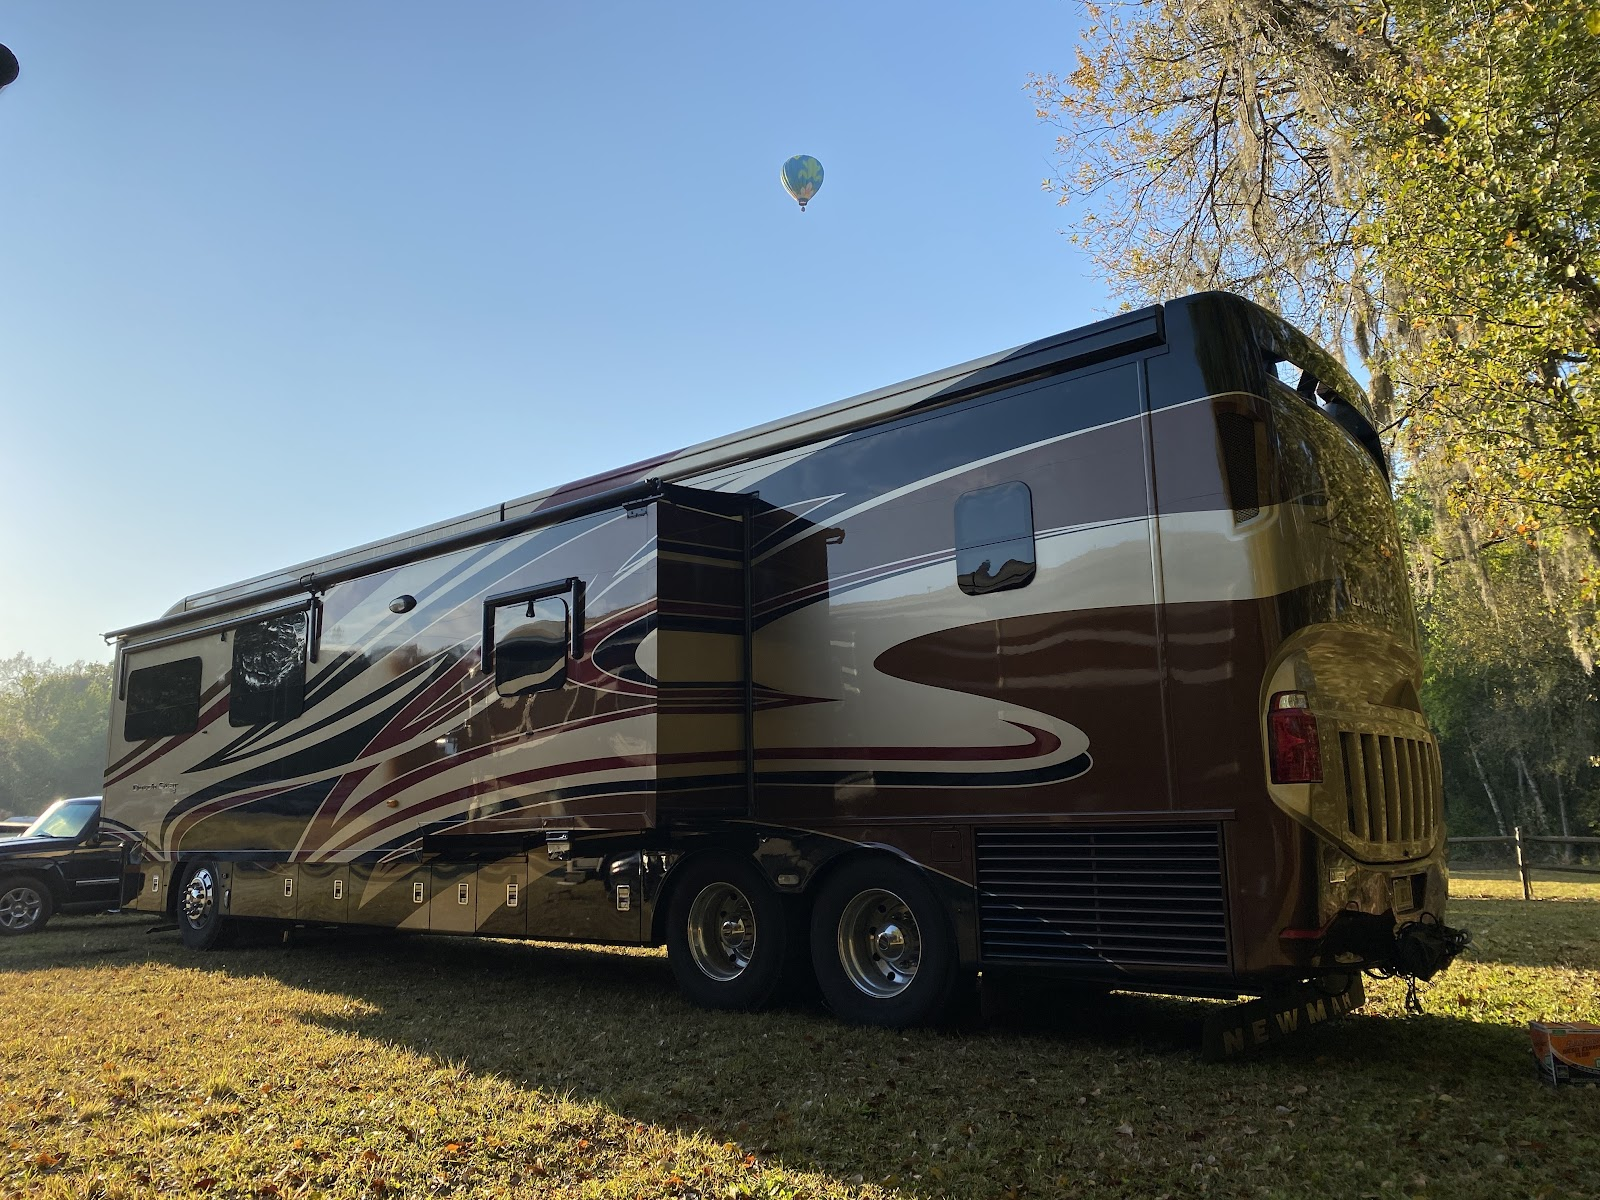 Class A RV parked with hot air balloons flying overhead